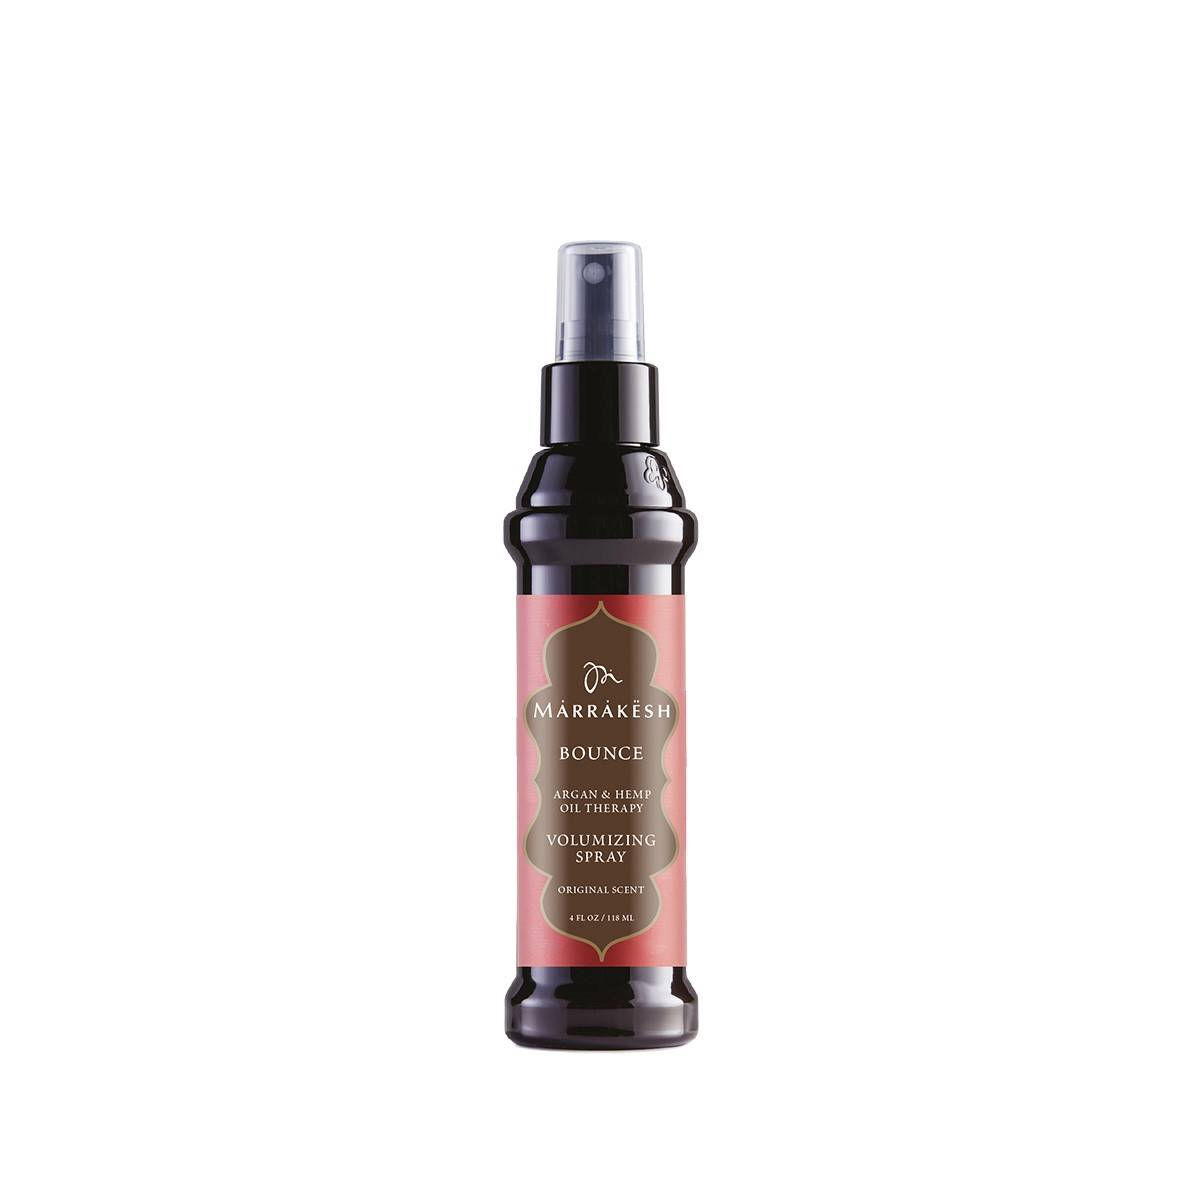 Volumizing Spray 118ml Marrakesh Bounce